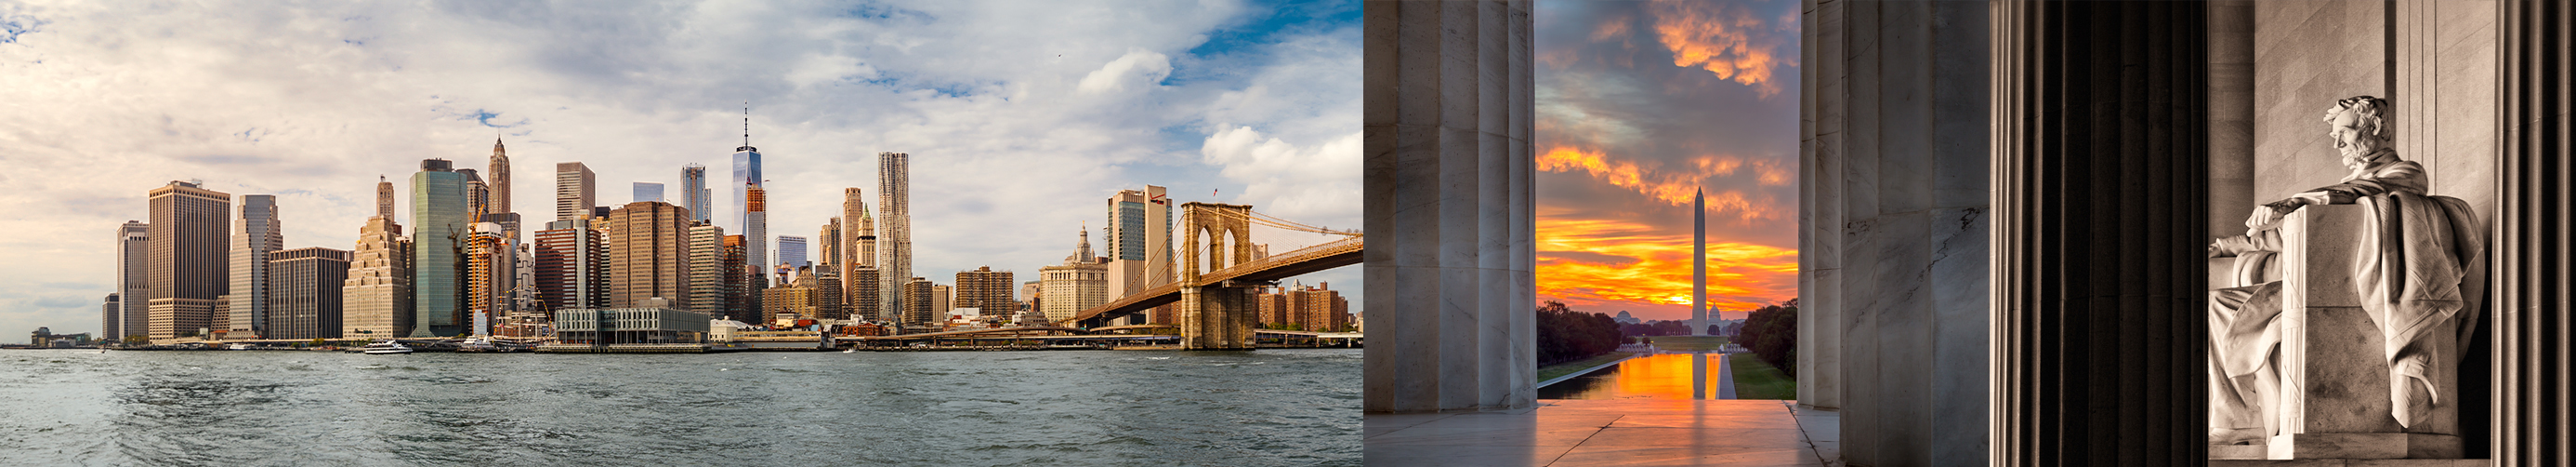 new-york-washington-bannerku2fmsXHlOgOx